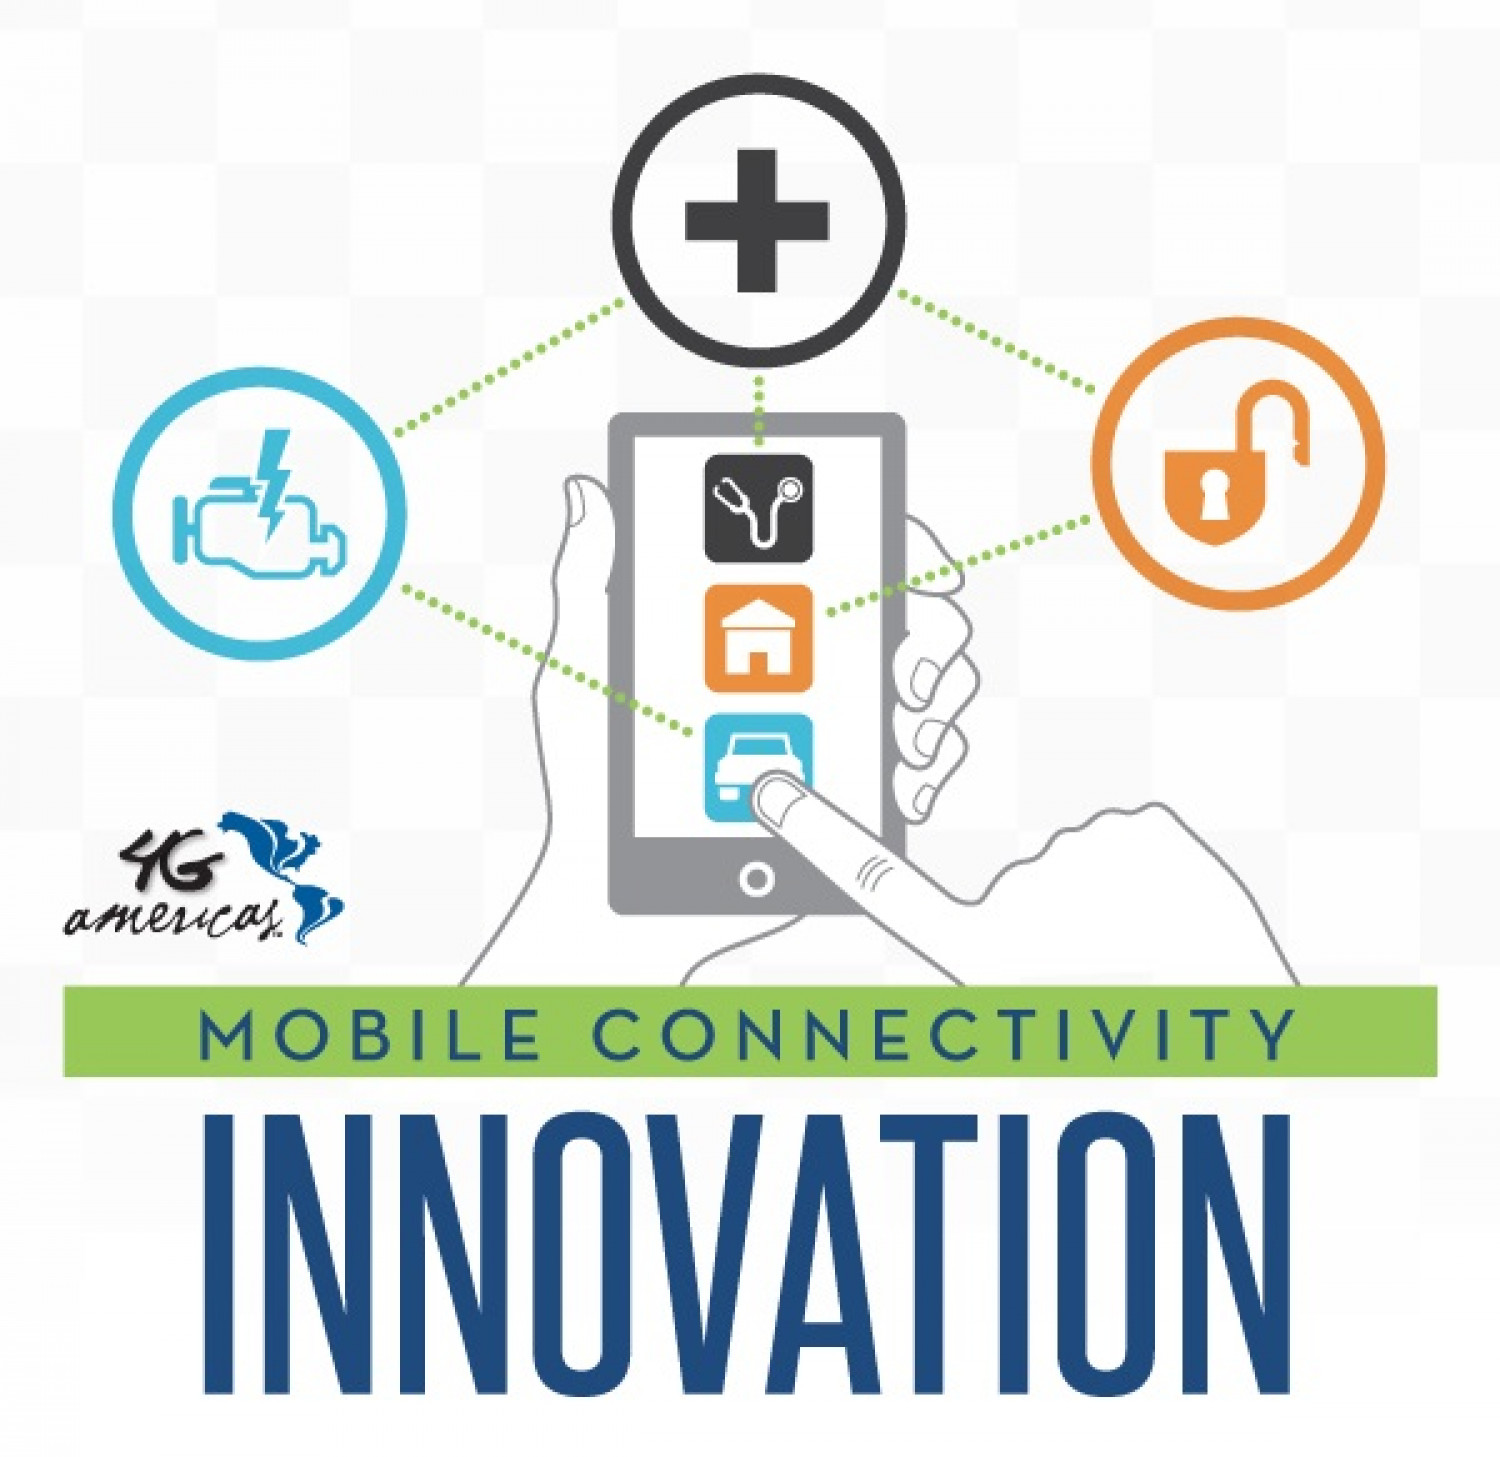 Mobile Connectivity: Innovation Infographic